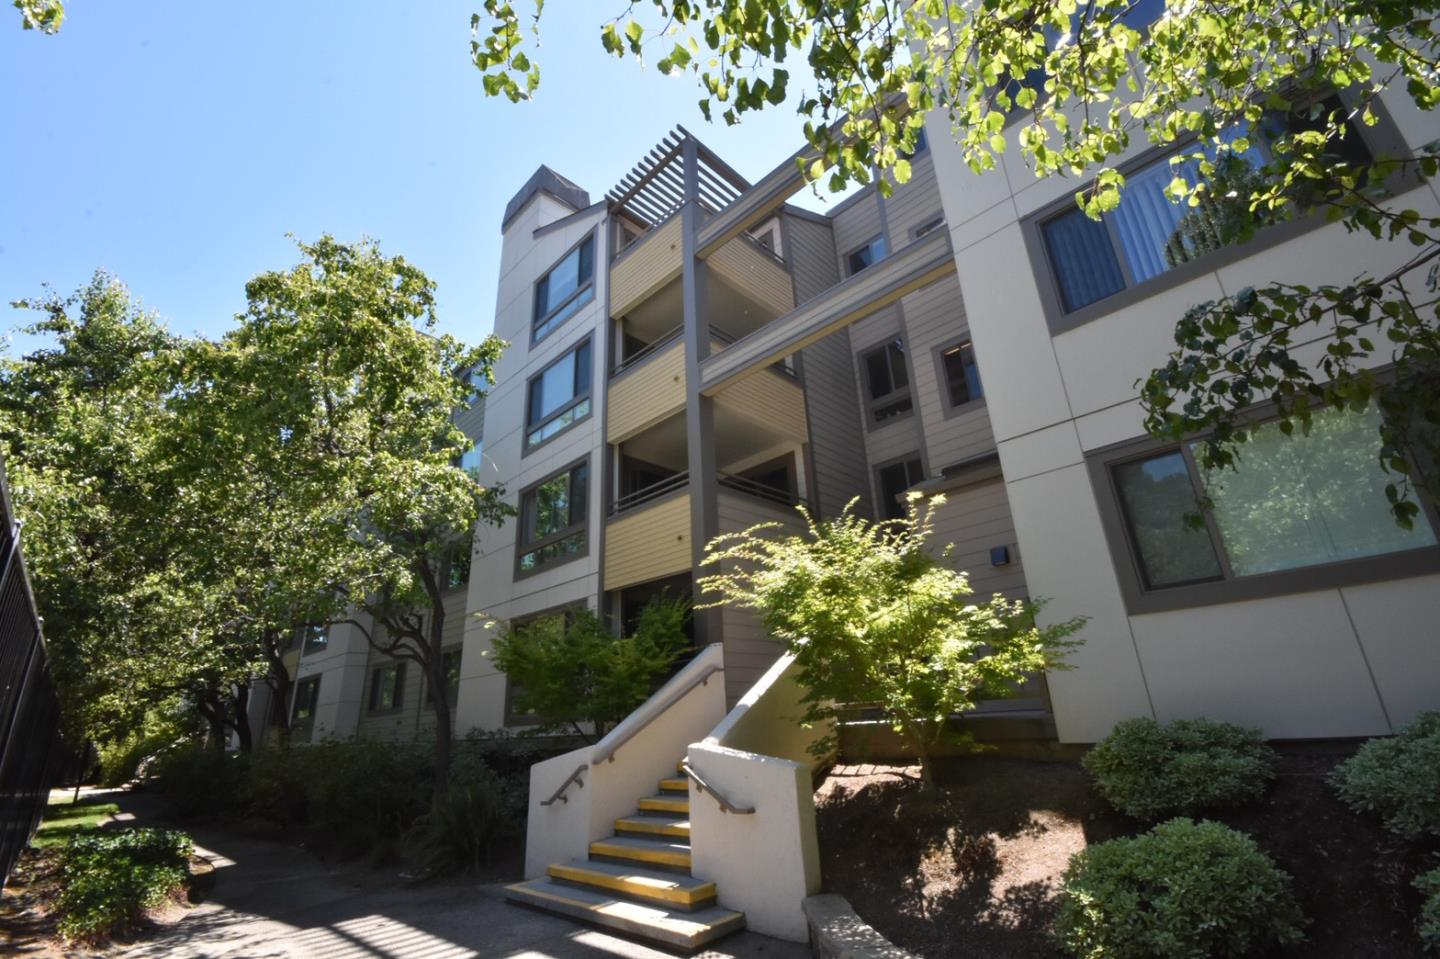 Welcome to this quiet top-floor condominium home with beautiful golf course and pool views,soaring ceilings and lots of natural light. you can enjoy two private master suites, a modern kitchen with new stainless appliances and quartz counter tops, new carpeting, paint, lighting and much more. North-west facing unit stays cooler in summertime and let you enjoy your outdoor balcony area and sunset views. Oversized living room with cozy fireplace and large windows/glass door overlooking the tree tops. Inside washer/dryer. Gated underground parking with elevator, extra storagespace/bike locker, refurbished pool & spa, childrens playground, community room with kitchen, and additional parking is all included in the HOA fee. Plenty of off-street parking and conveniently located near 280, 101, El Camino Real, and Lawrence Expressway, right in the heart of Silicon Valleys tech center. Best location in complex!